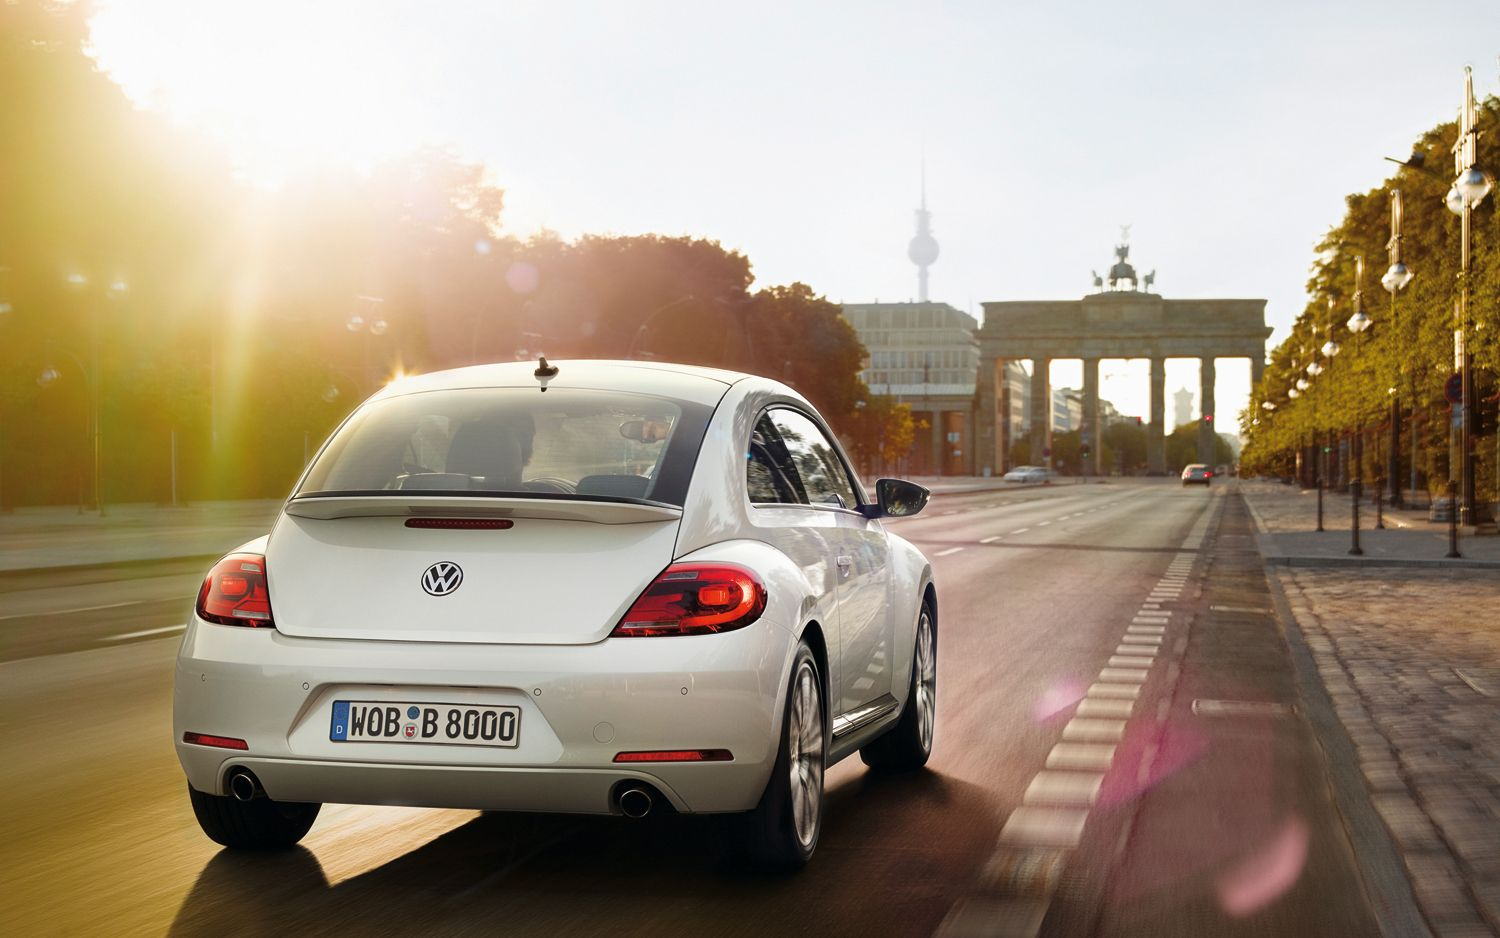 2012 Volkswagen Beetle Turbo Rear View1